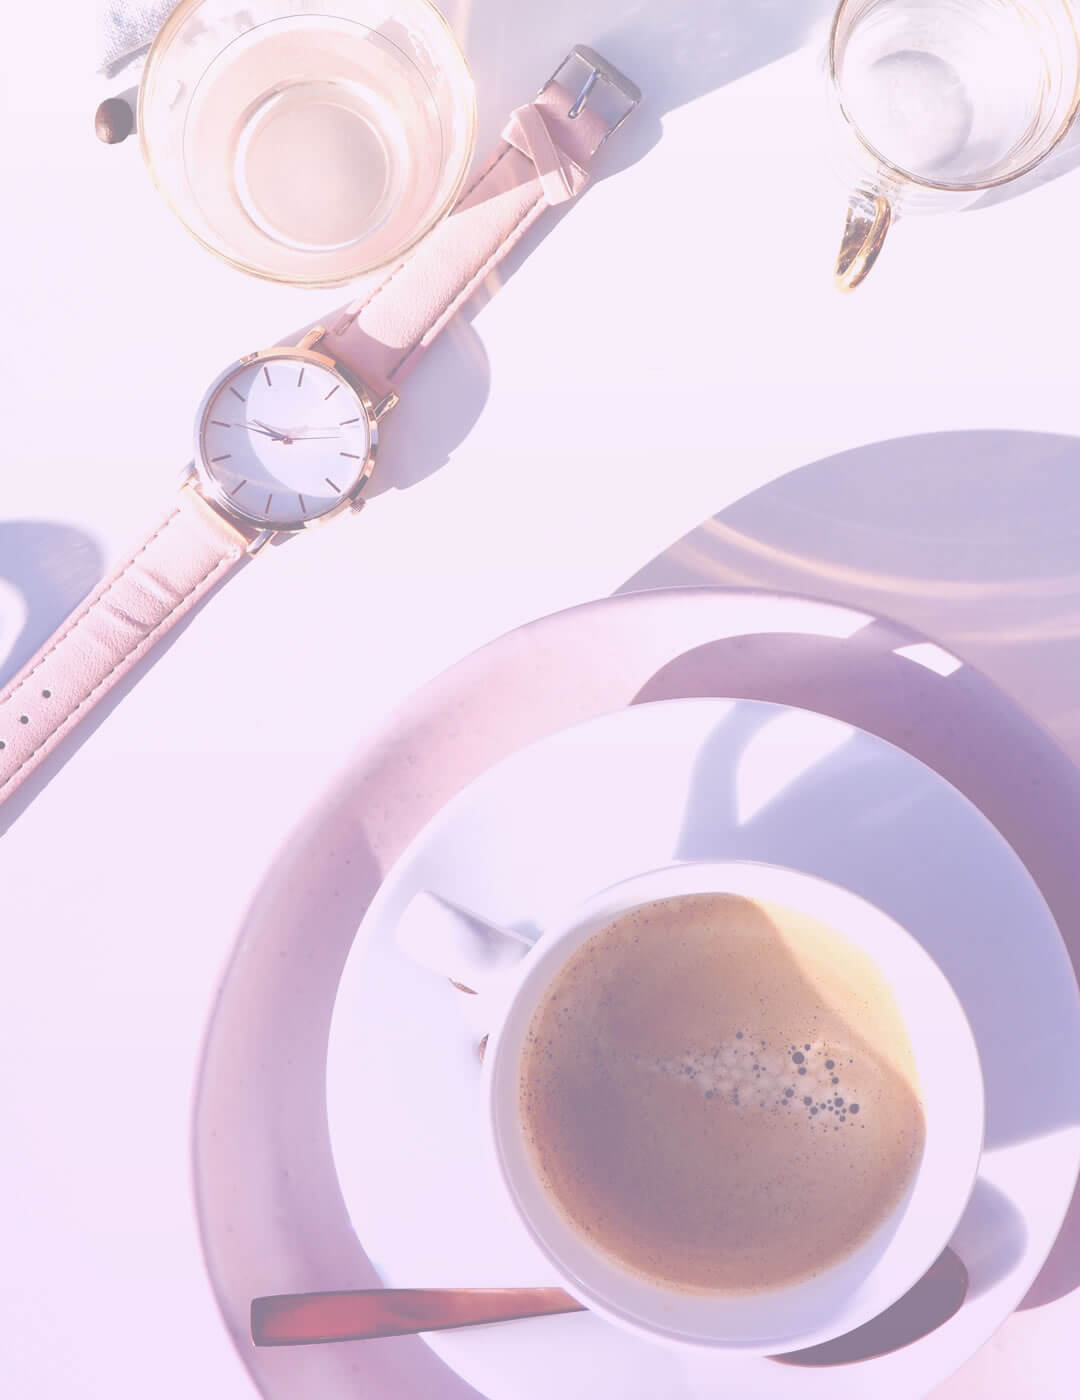 a cup of coffy and a watch as tools to improve work efficiency